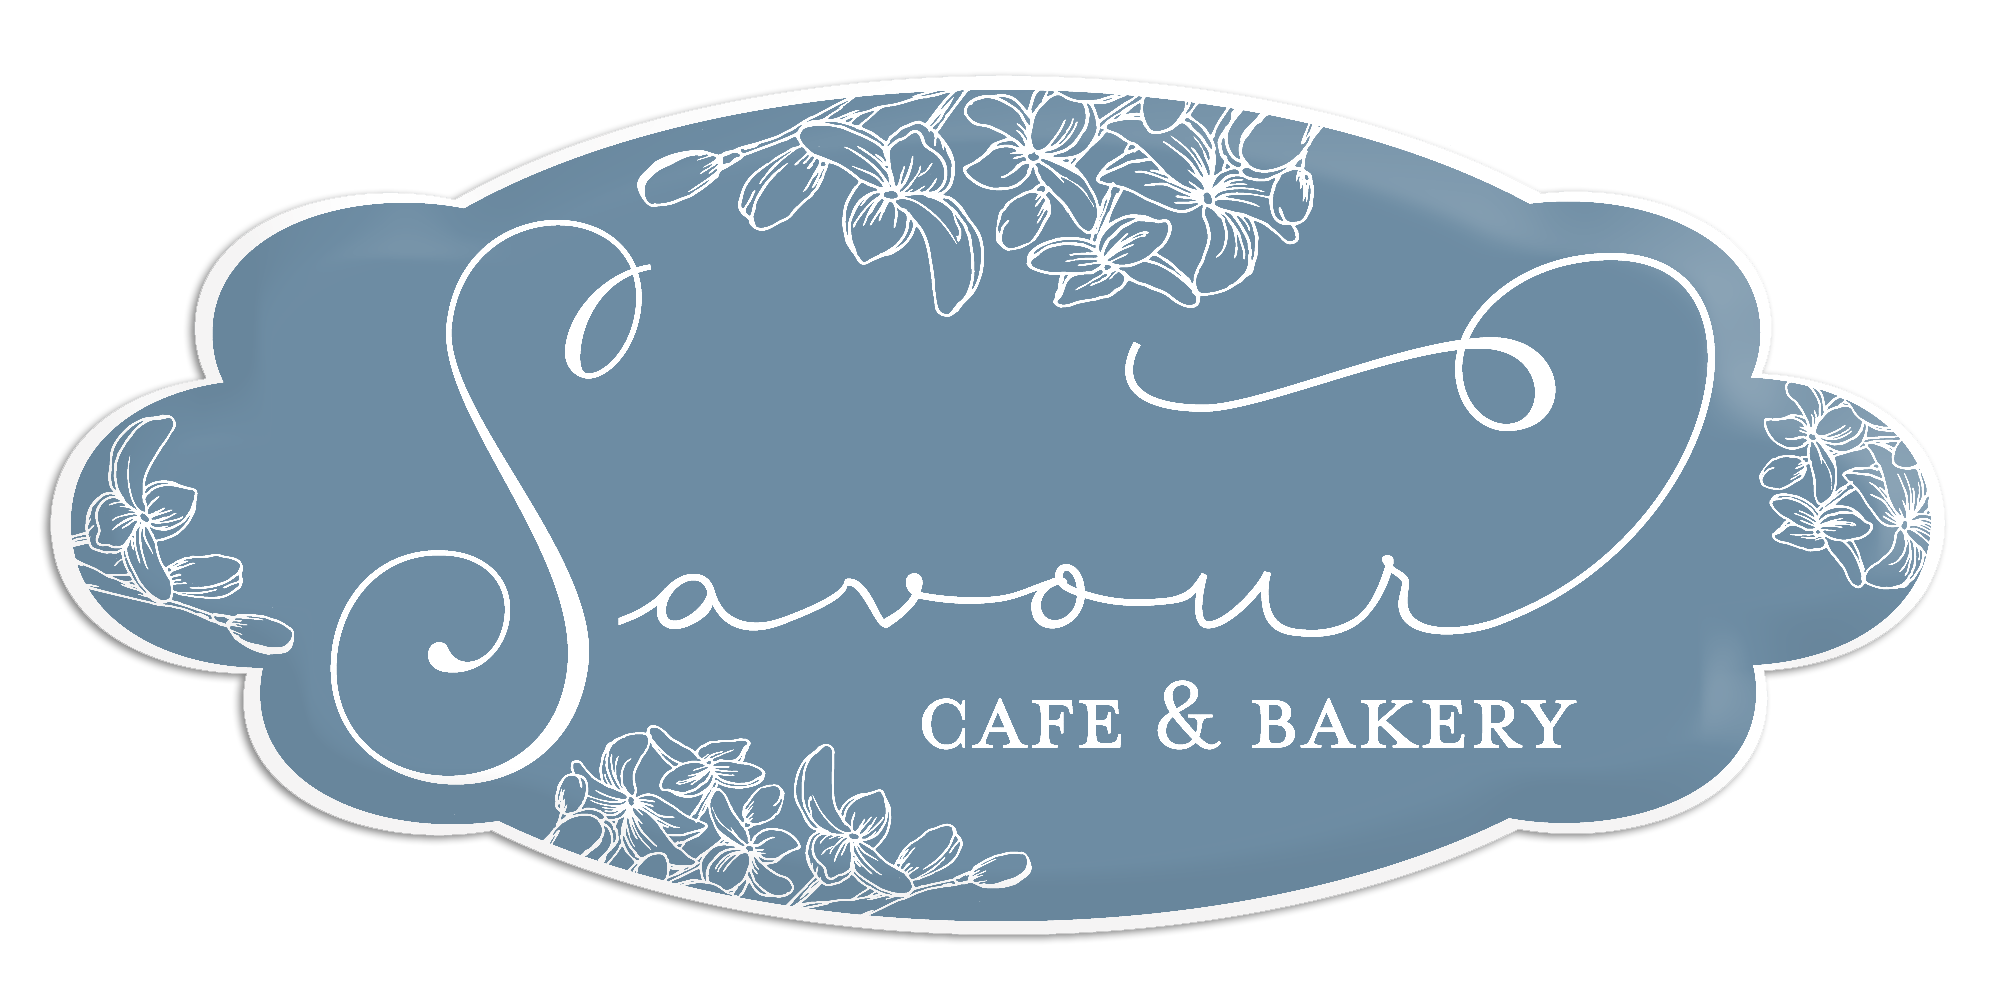 The Savour Cafe & Bakery